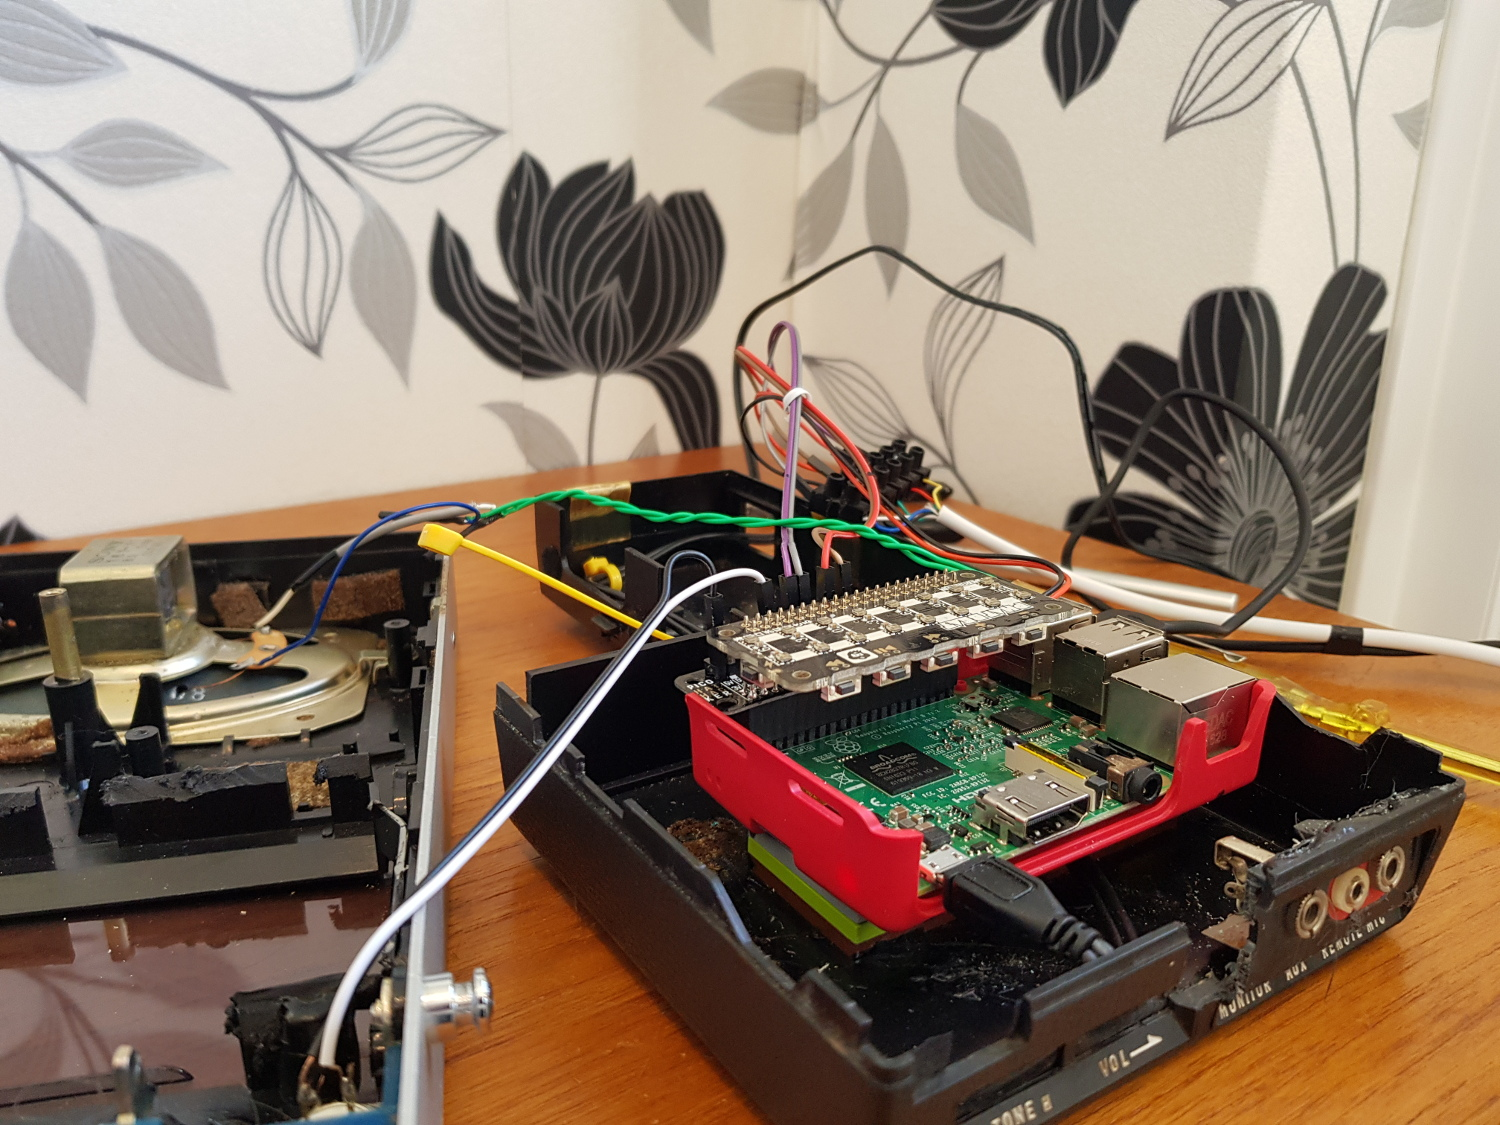 Raspberry Pi and pHAT BEAT are placed inside an old cassette player wired to the intercom outside. The pHAT BEAT is also connected to the player's original speaker so that speech and the chime can be heard